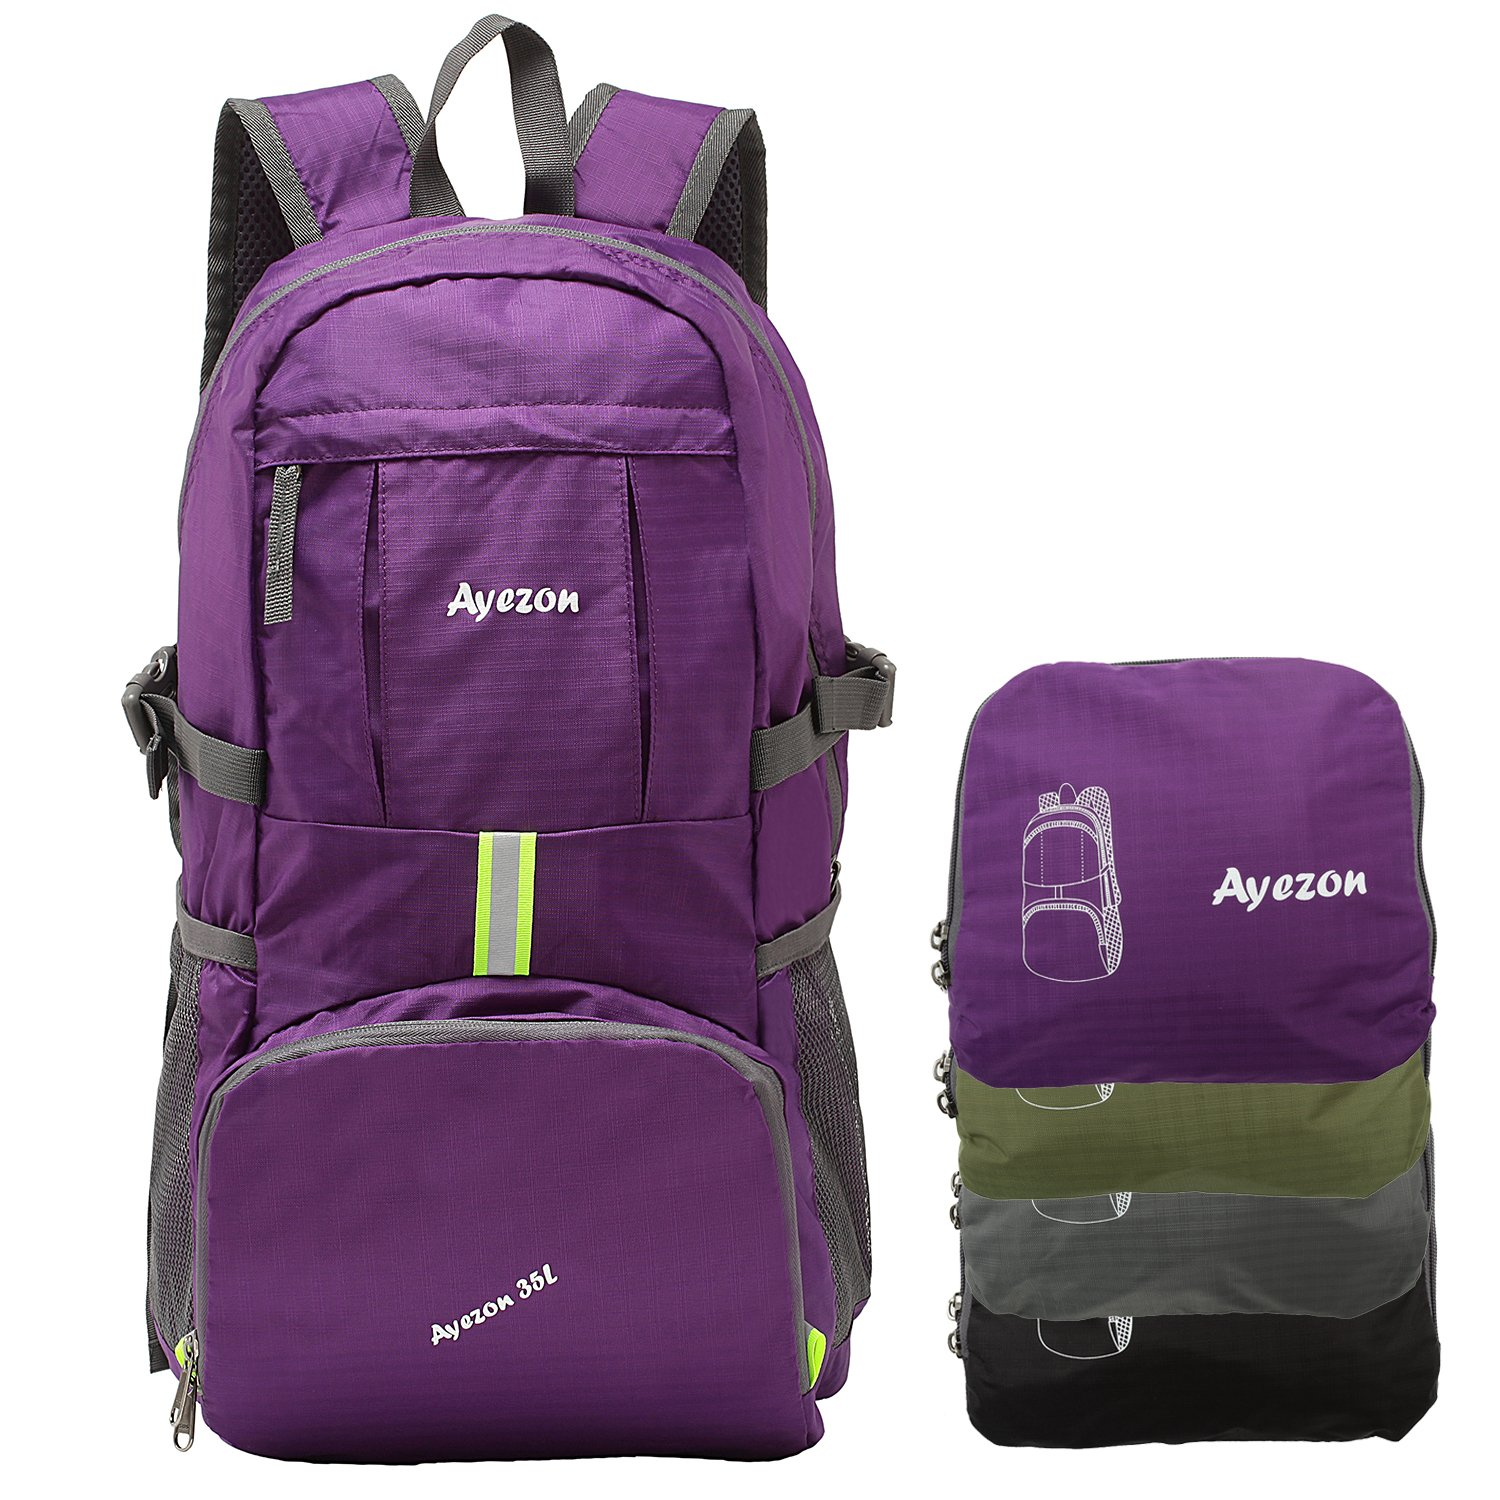 Ayezon Durable Water-resistant Packable Camping & Hiking Backpack Ultra-Light for Shopping 35L Purple